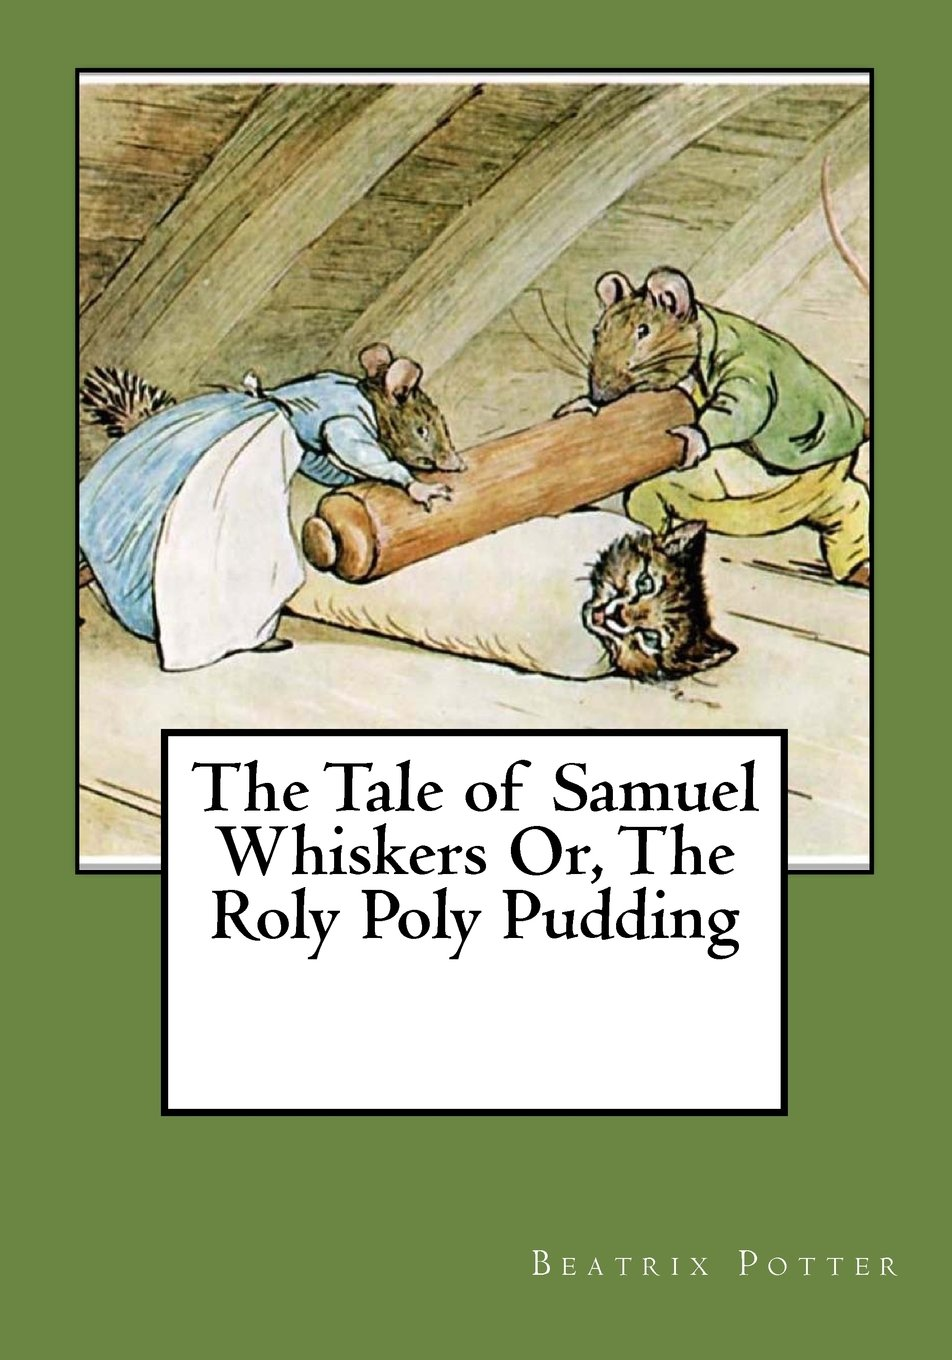 Read Online The Tale of Samuel Whiskers Or, The Roly Poly Pudding pdf